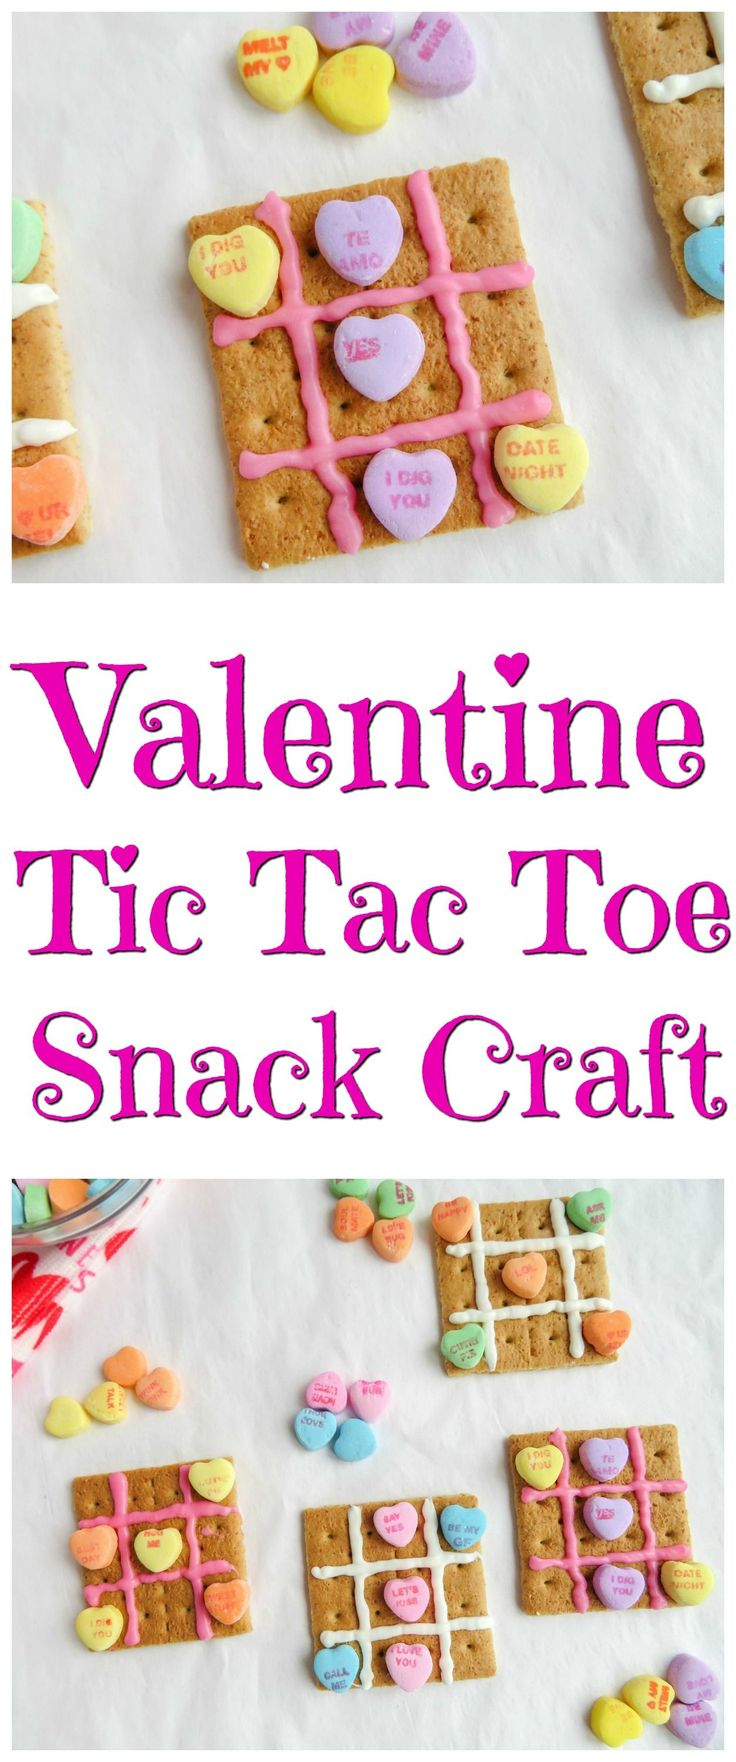 Valentine Tic Tac Toe Snack Craft - perfect for a classroom party too! #artsandcrafts,